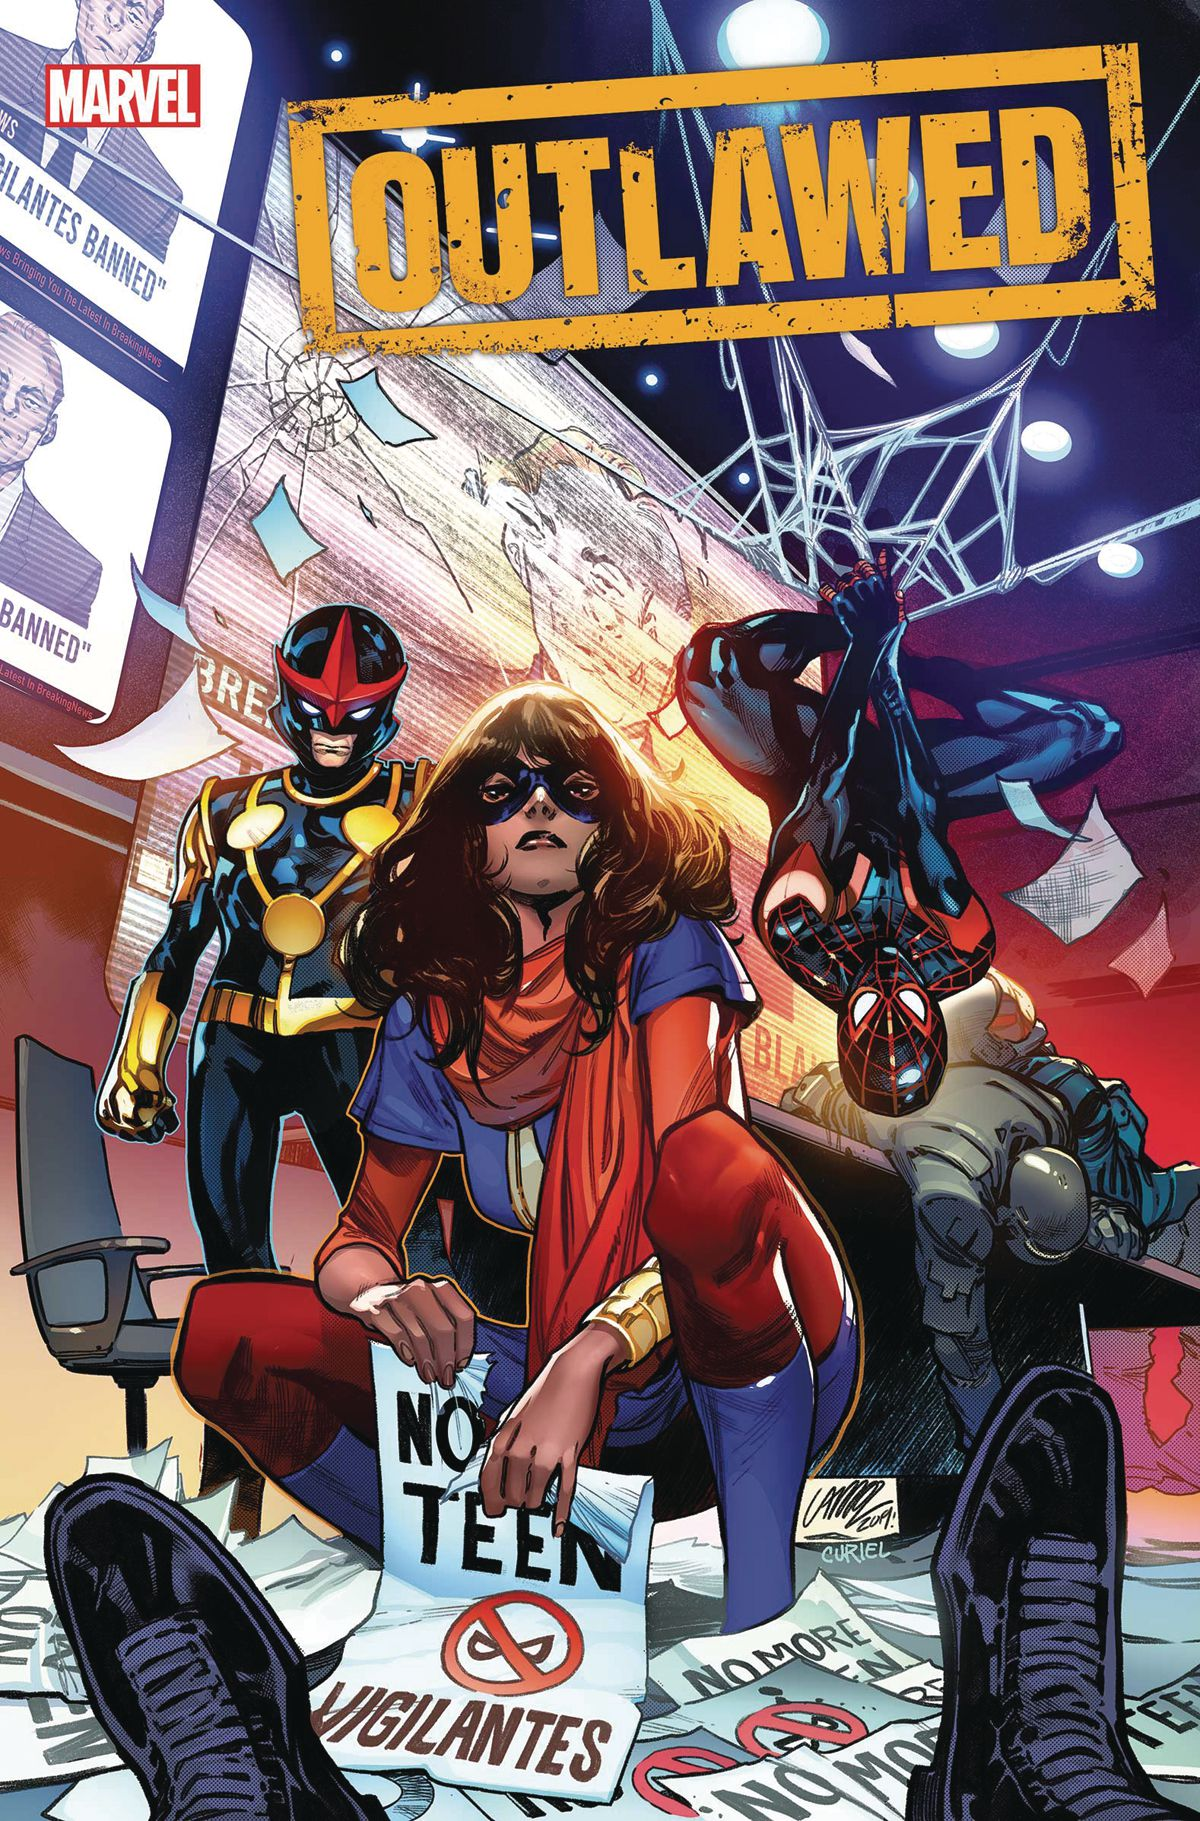 """Ms. Marvel, Miles Morales/Spider-Man, and Nova pose in a boardroom full of unconscious guards. The floor is strewn with posters that say """"NO TEEN VIGILANTES."""" Ms. Marvel is proudly ripping one in half. From the cover of Outlawed #1, Marvel Comics (2020)."""